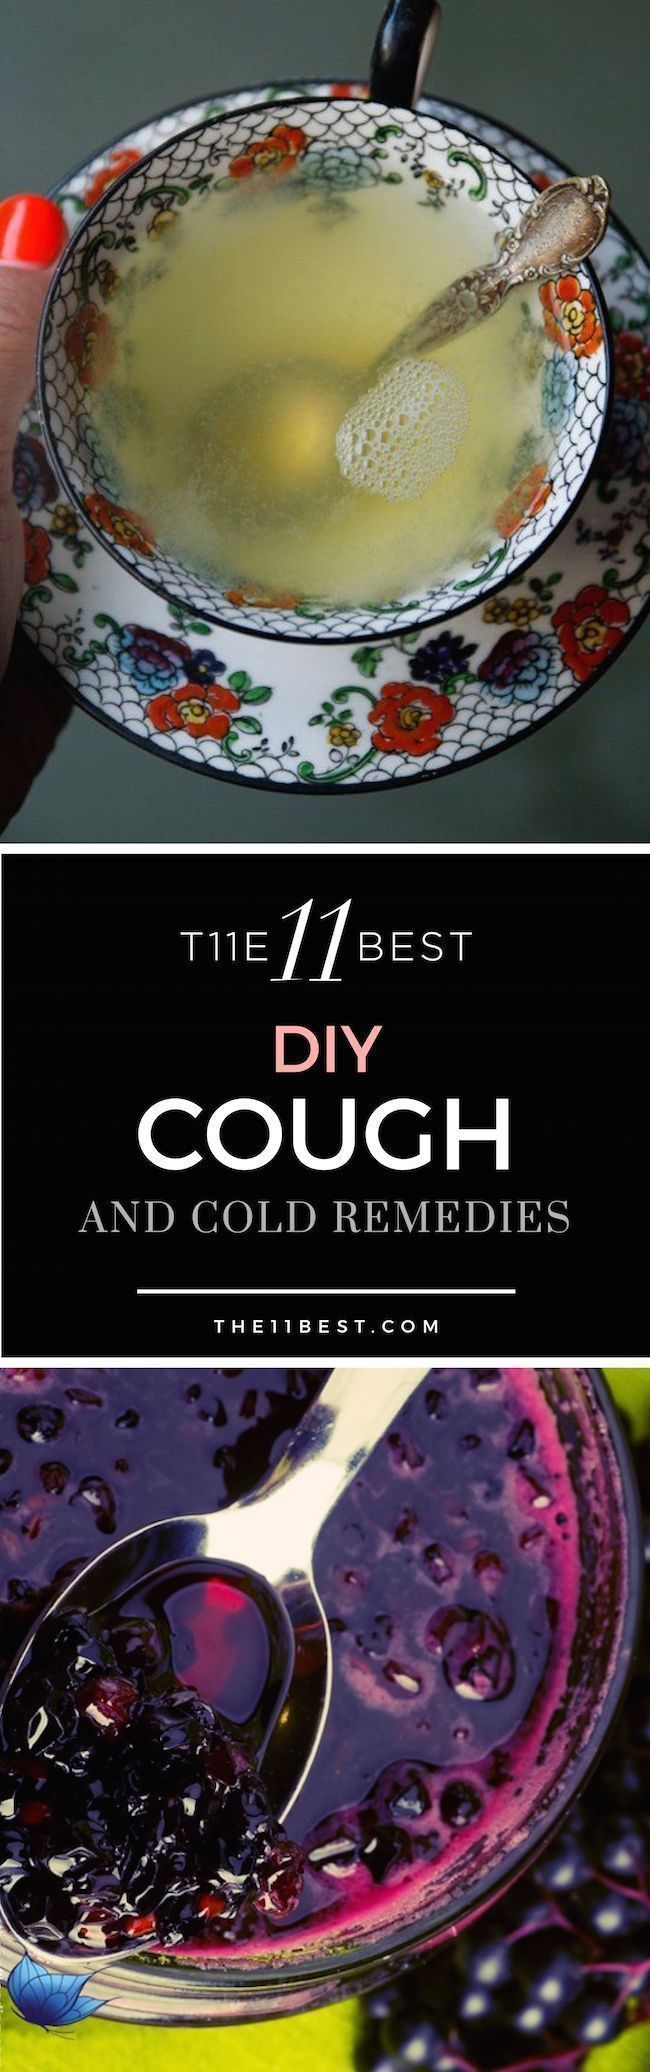 DIY Cough and Cold Remedies